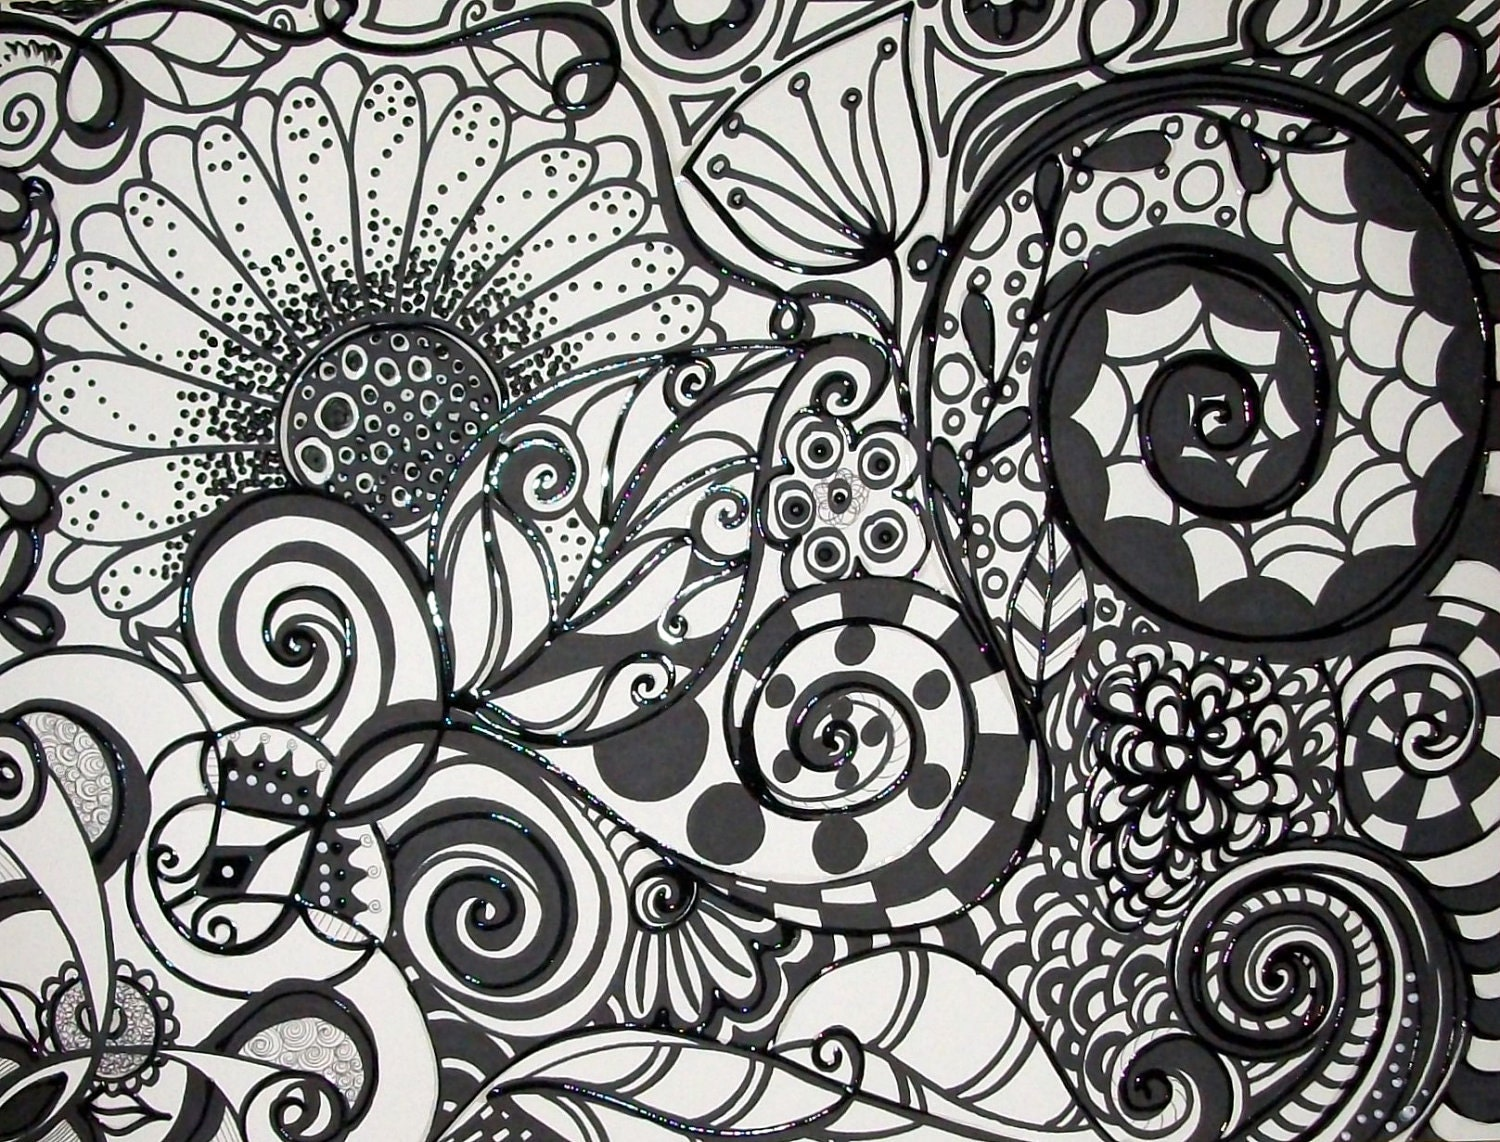 Black and white original abstract ink acrylic painting on for Abstract painting on black canvas